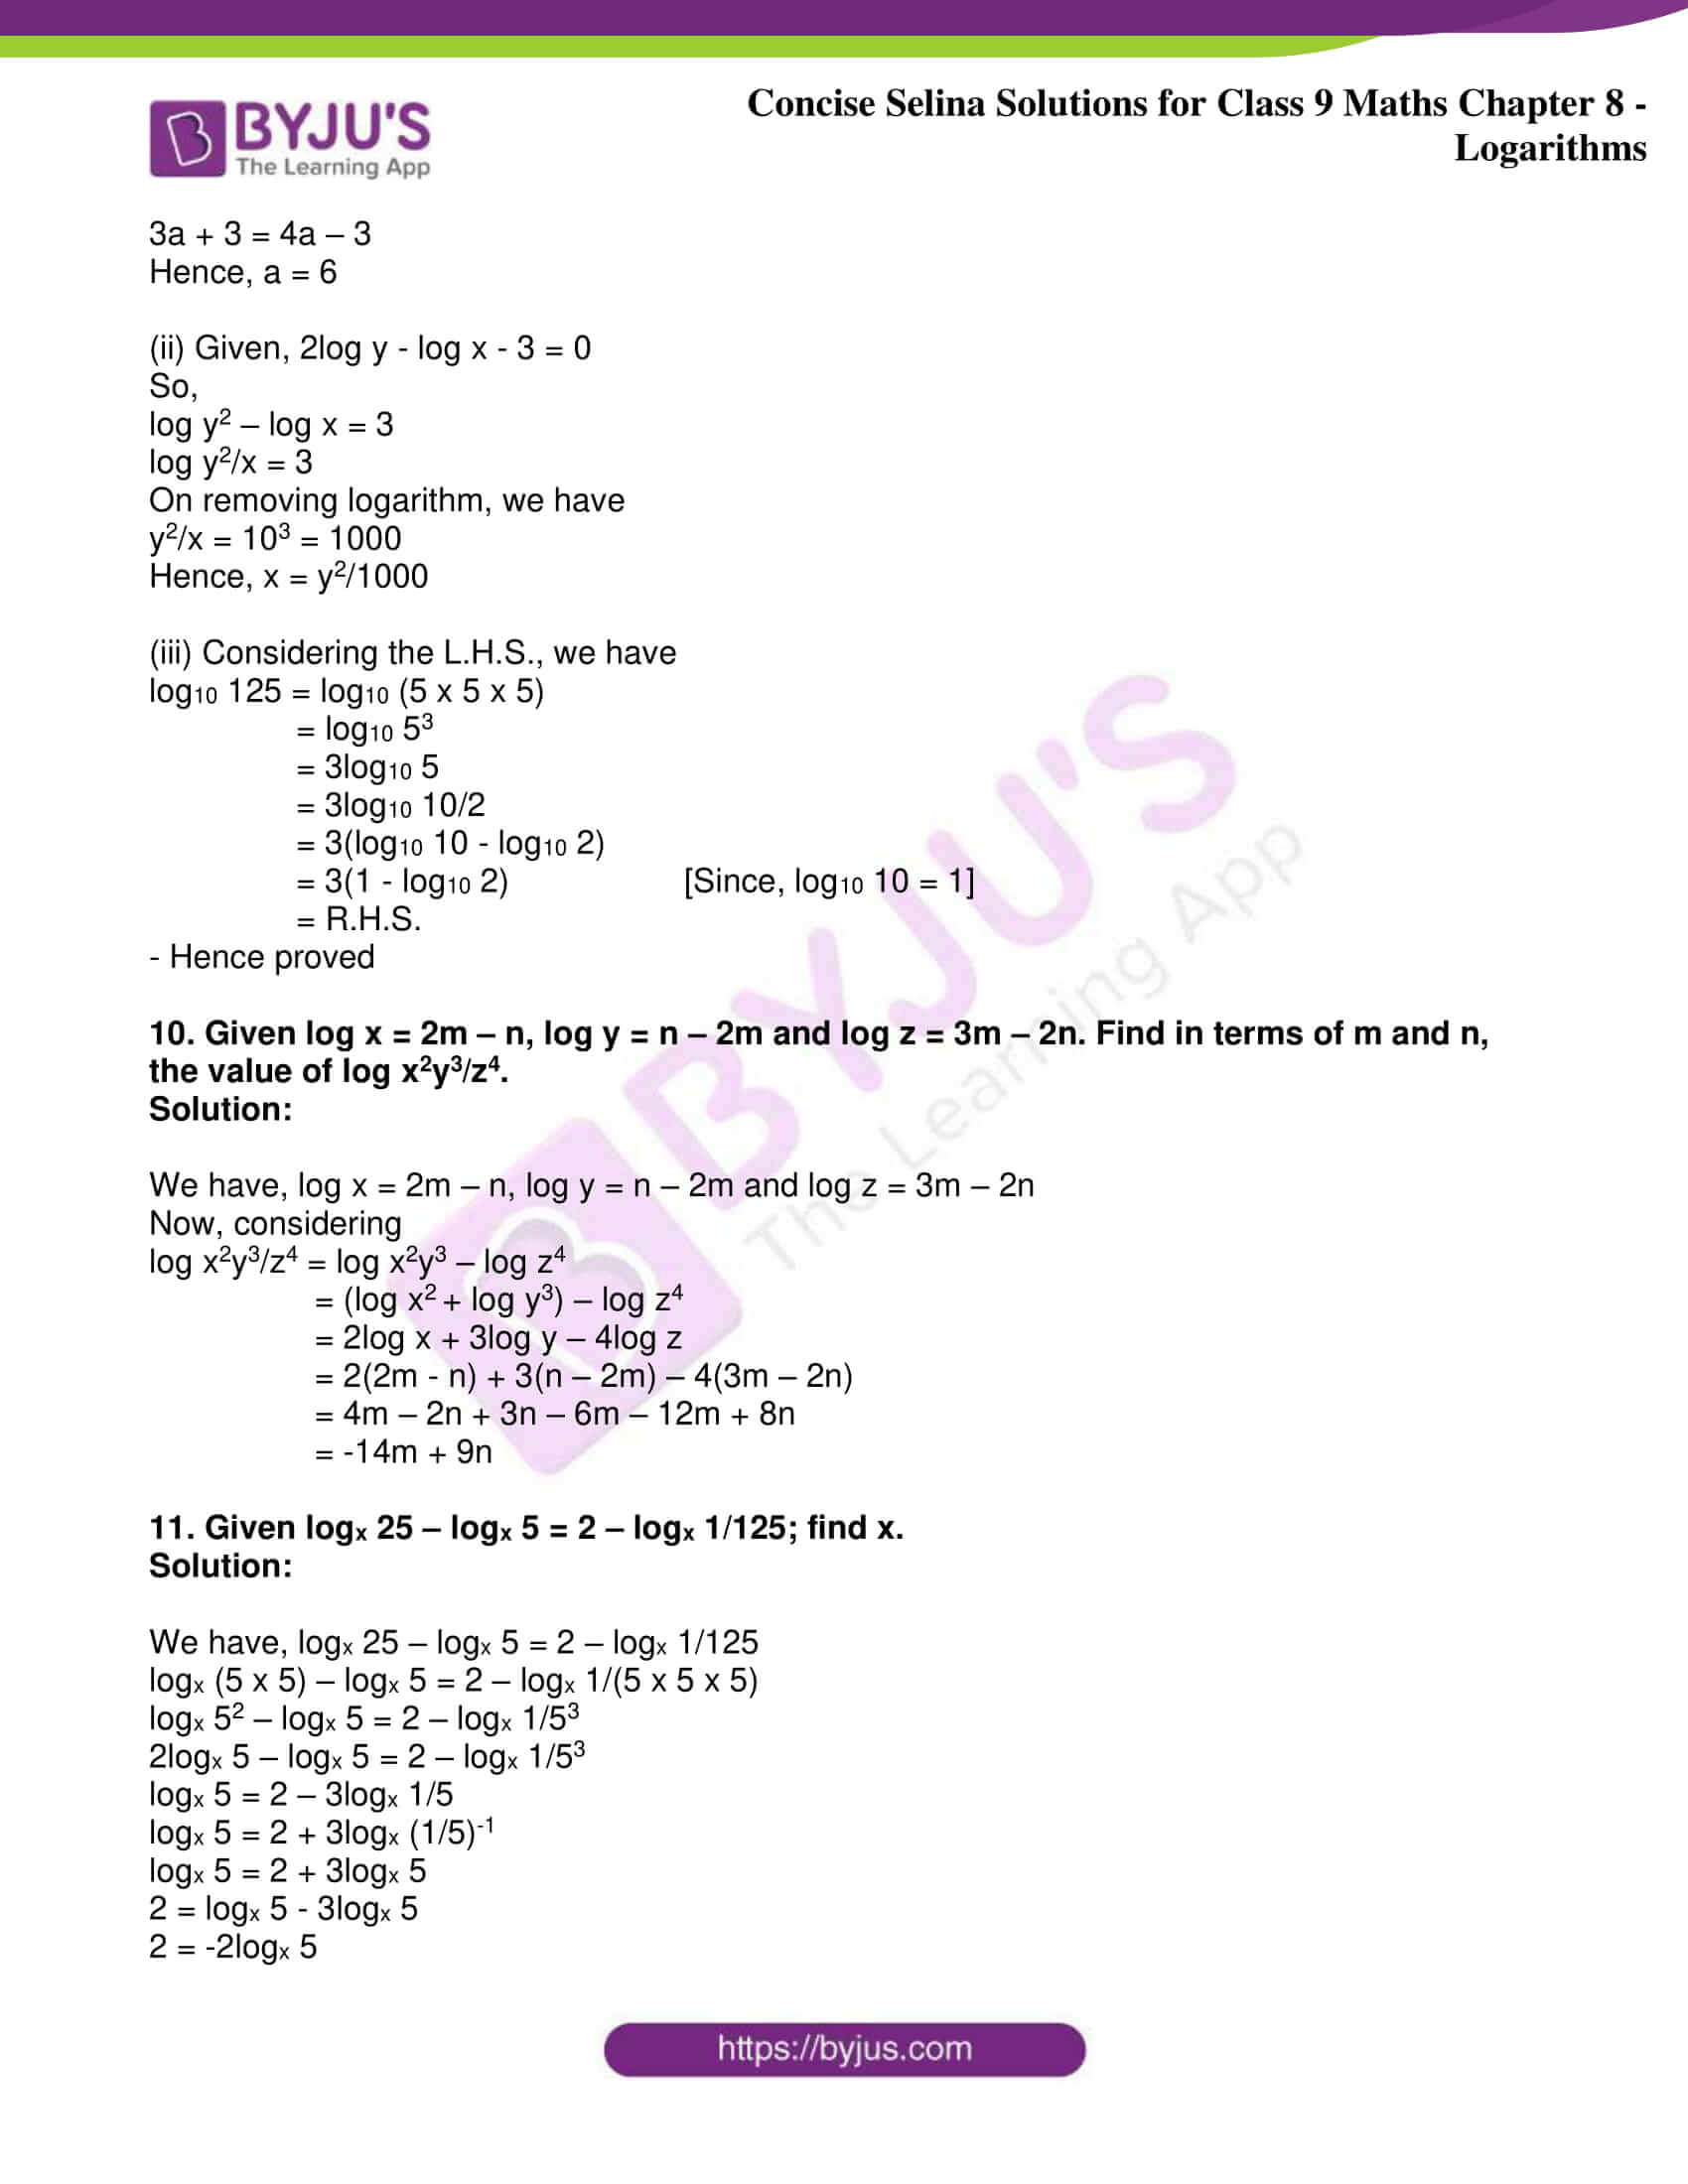 icse class 9 maths may10 selina solutions chapter 8 logarithms 24